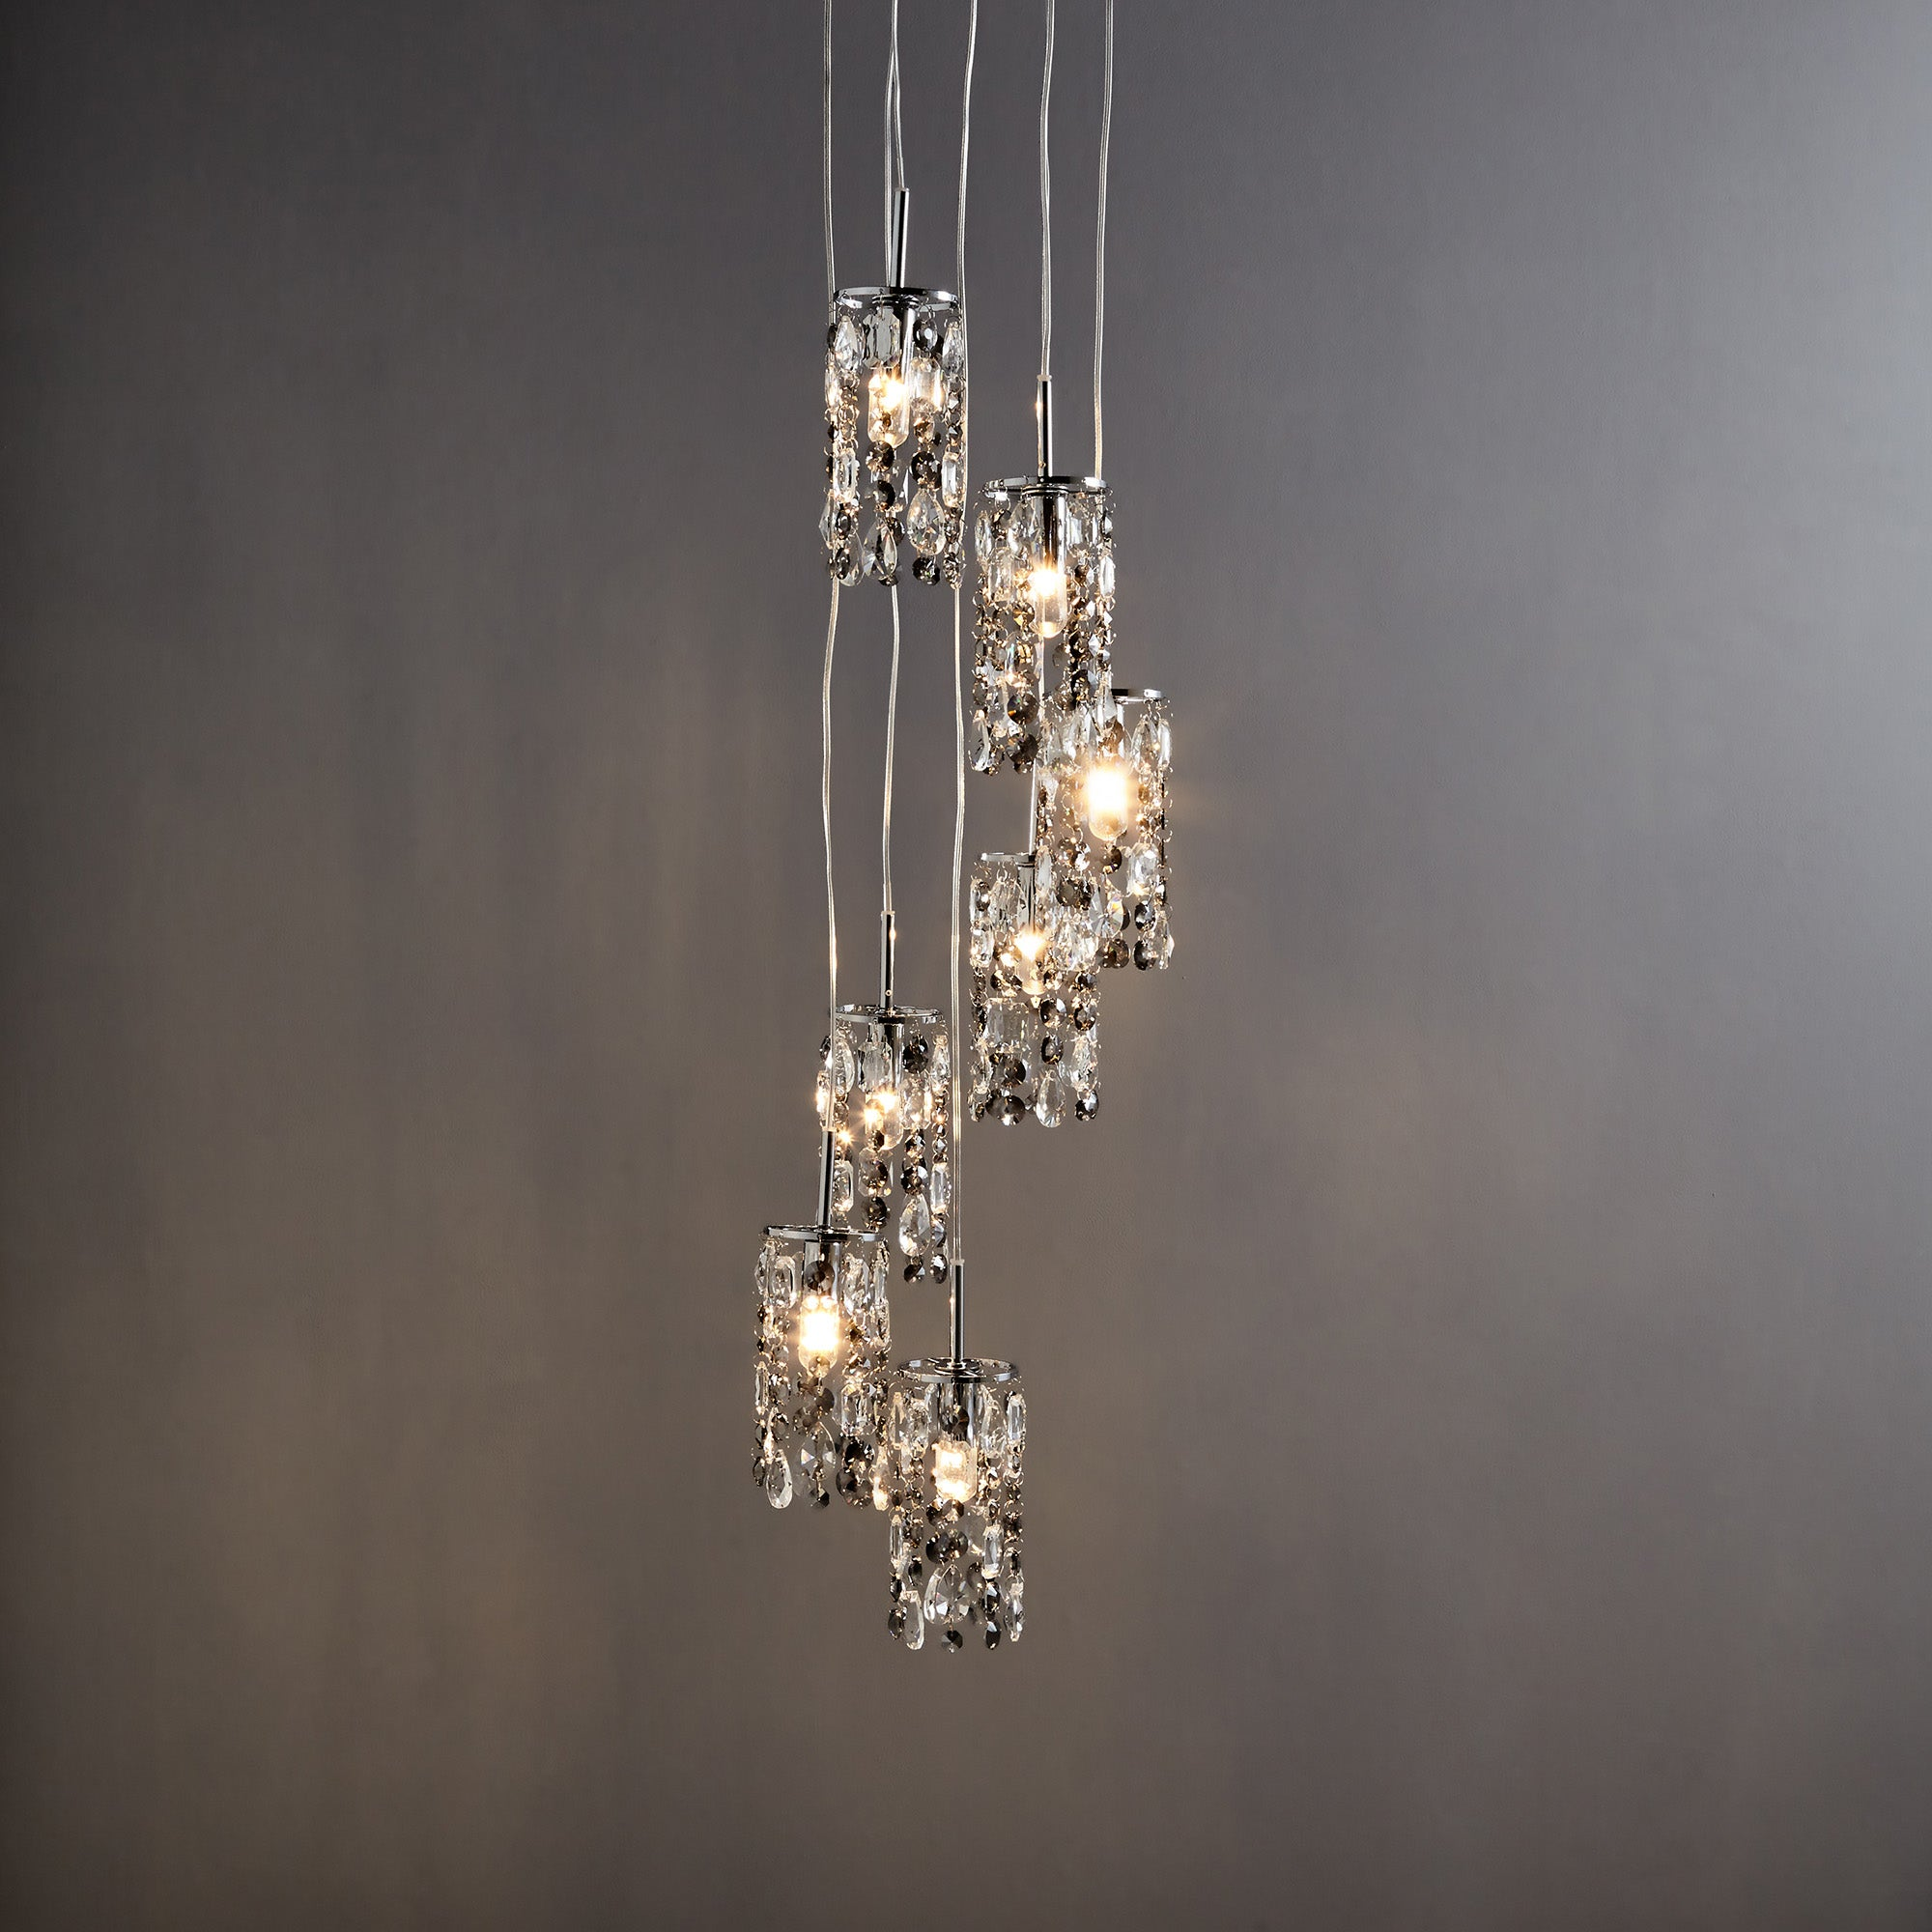 Image of Marquis by Waterford Lagan Cascading Chrome 7 Light Cluster Ceiling Fitting Chrome